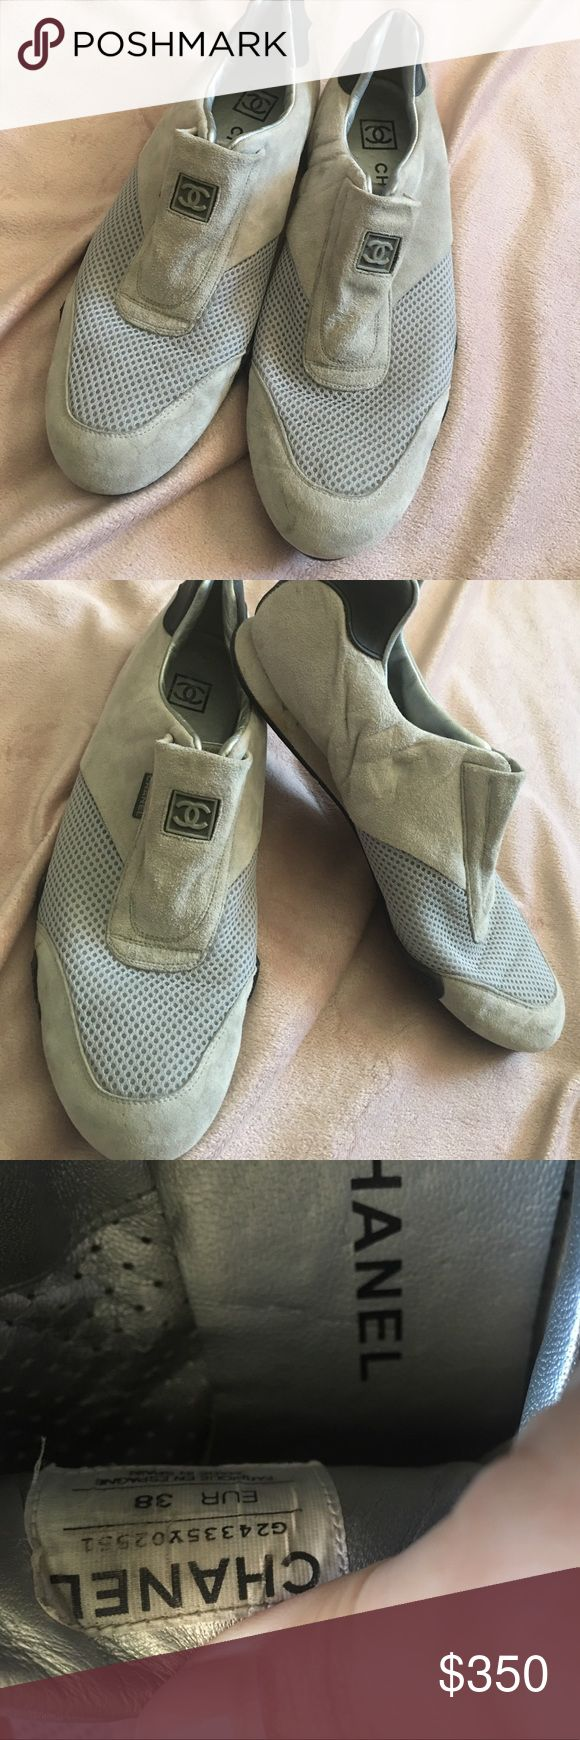 Chanel tennis shoes Used Chanel shoes..No dust bag or box available CHANEL Shoes Sneakers